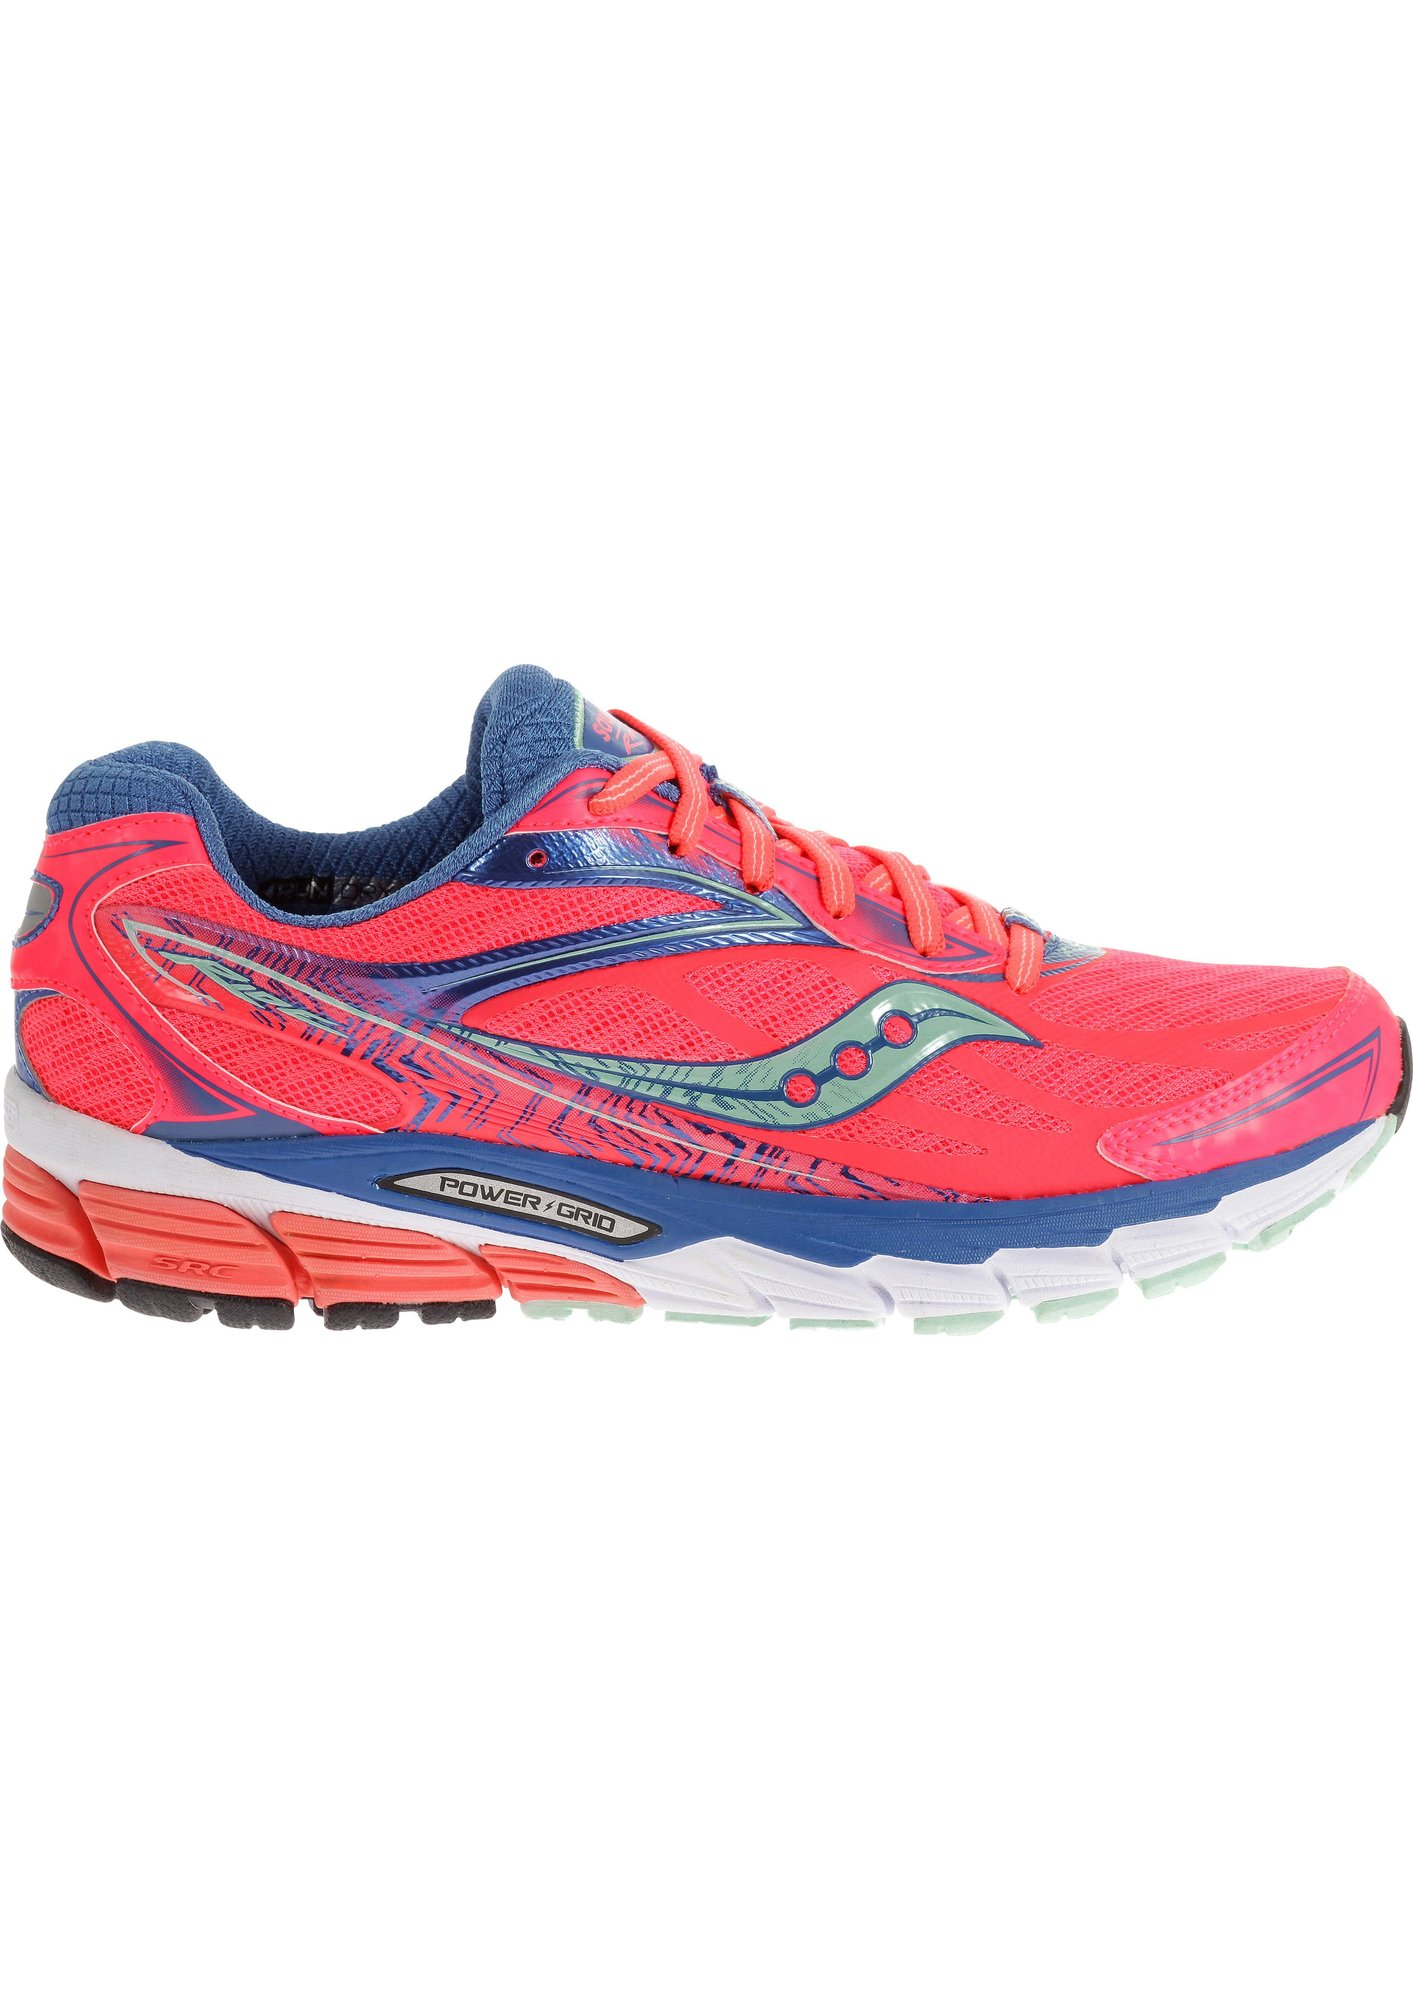 Saucony Lady Ride 8 in Coral